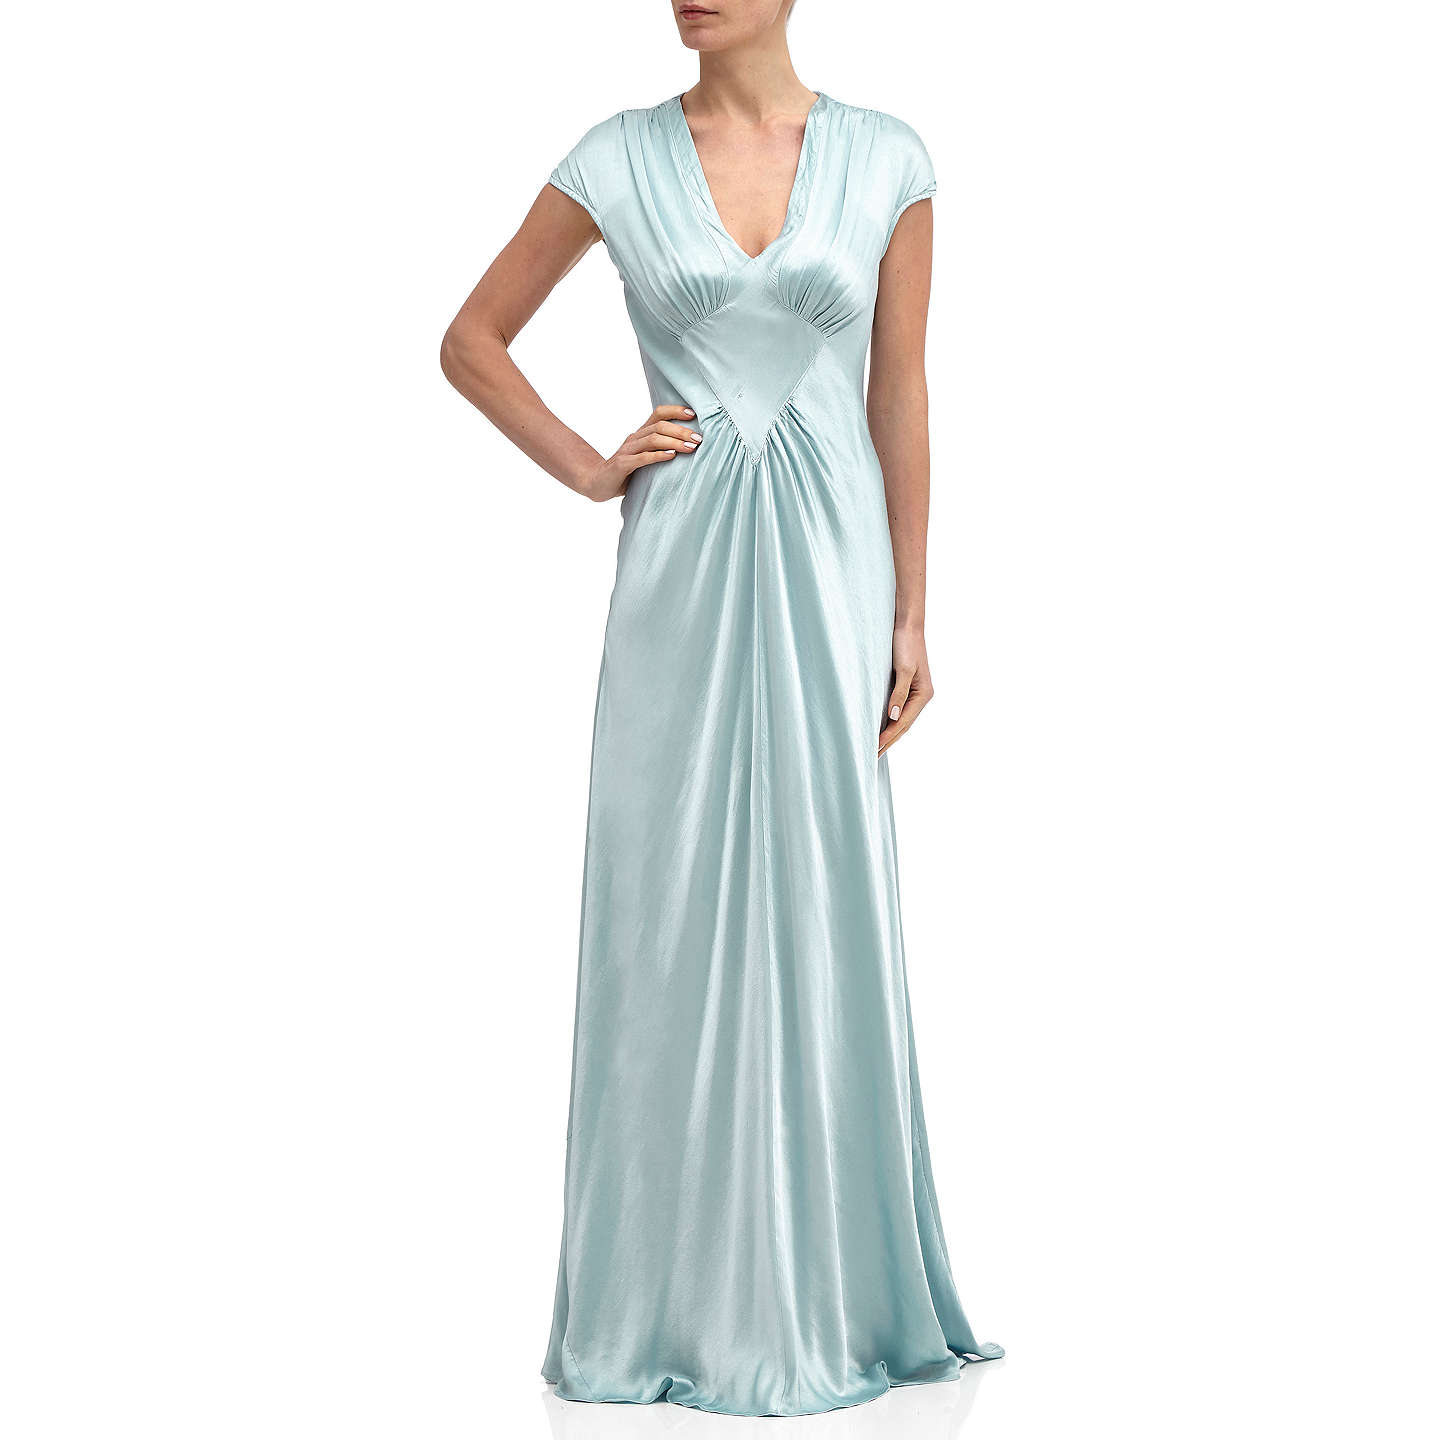 BuyGhost Iris Satin Dress, Sky Light, M Online at johnlewis.com